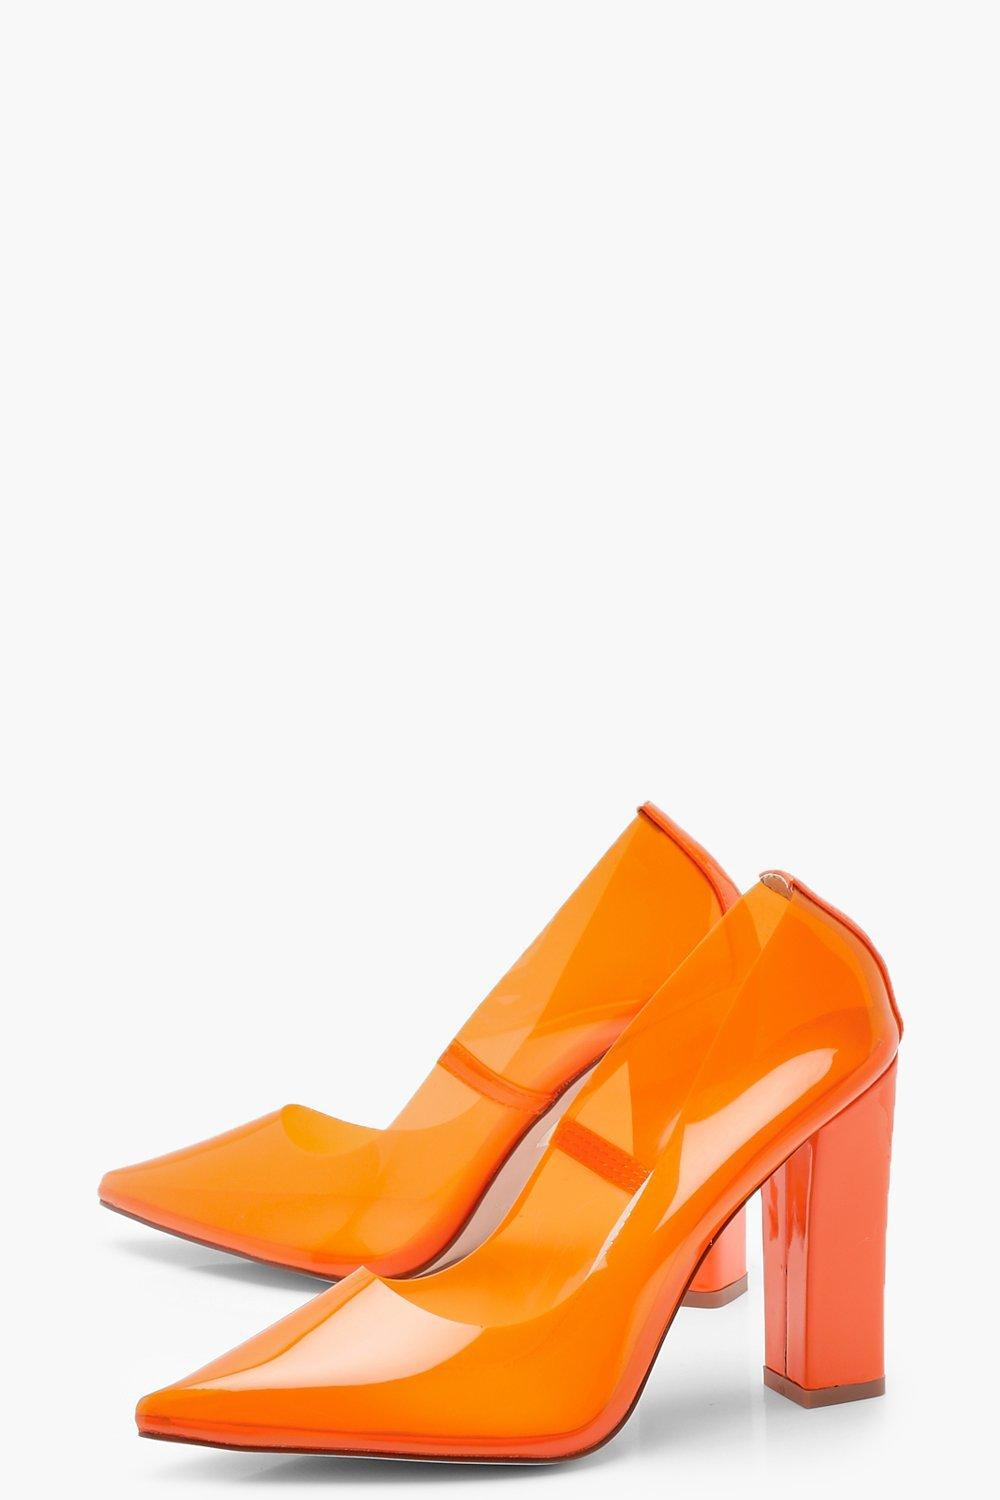 98eefc8994e4 Lyst - Boohoo Clear Block Heel Courts in Orange